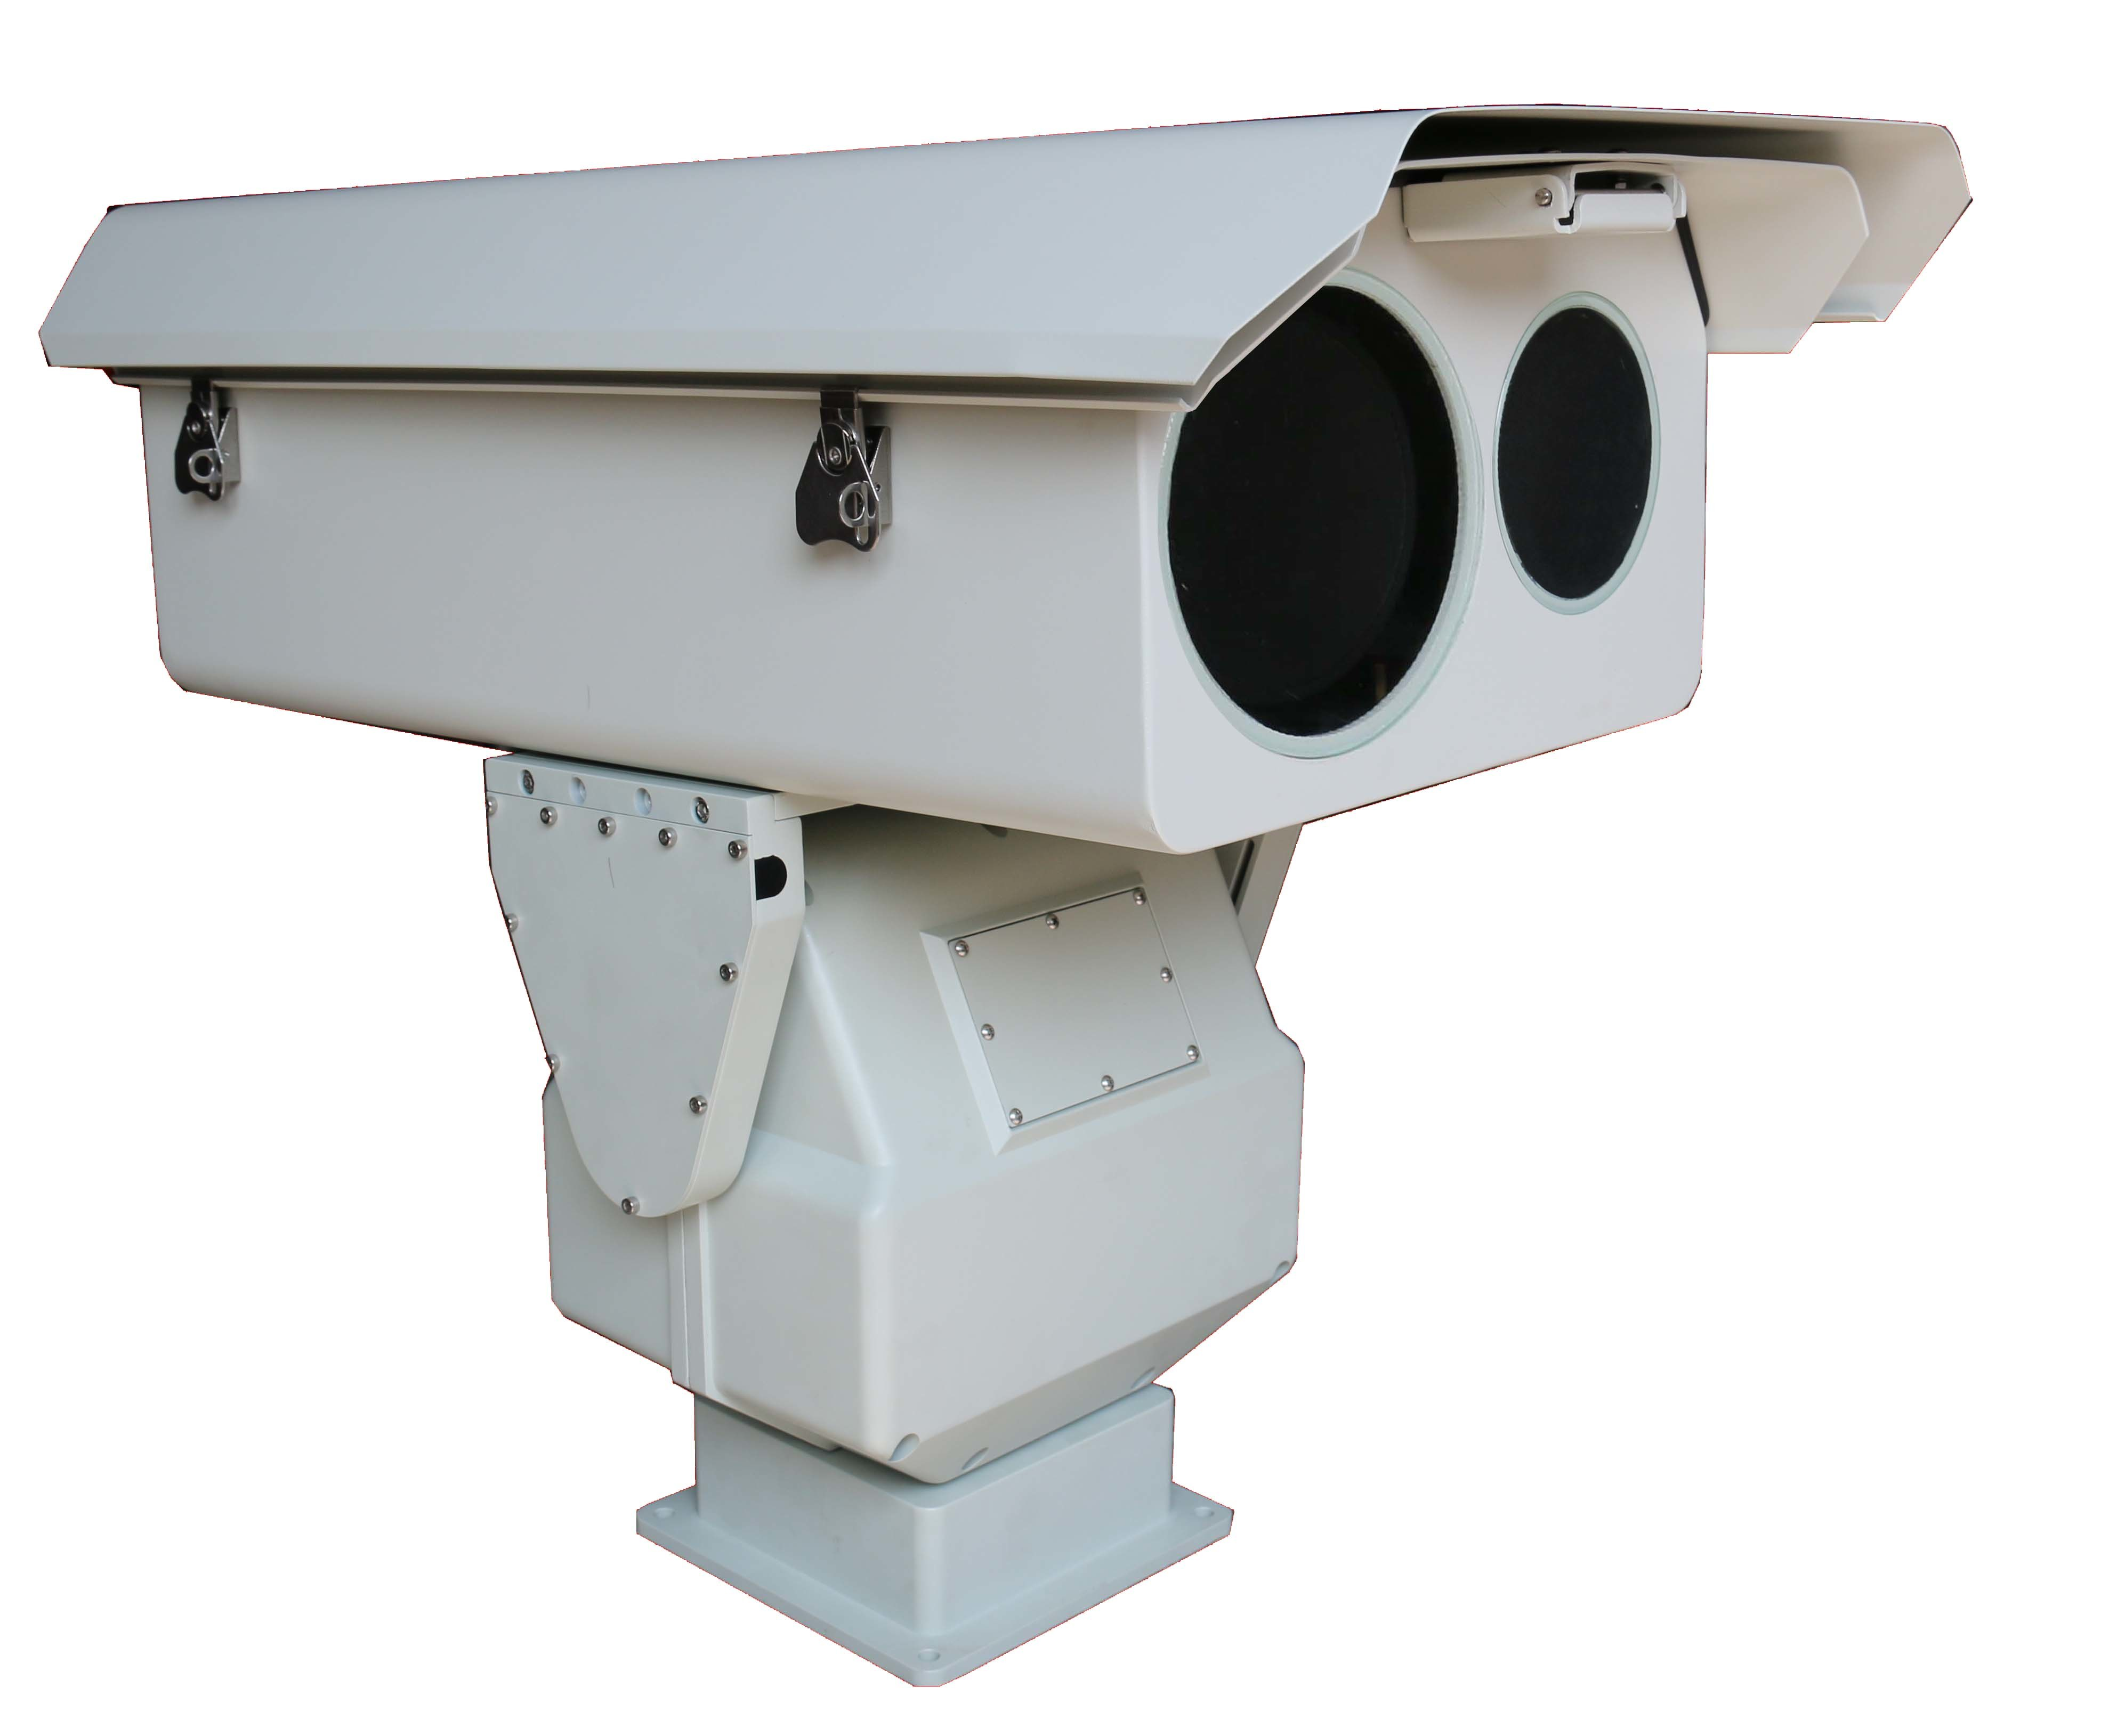 HD Thermal Image Laser PTZ HD1080p@30fps Camera, with Onvif Protocol, All Weather Workable